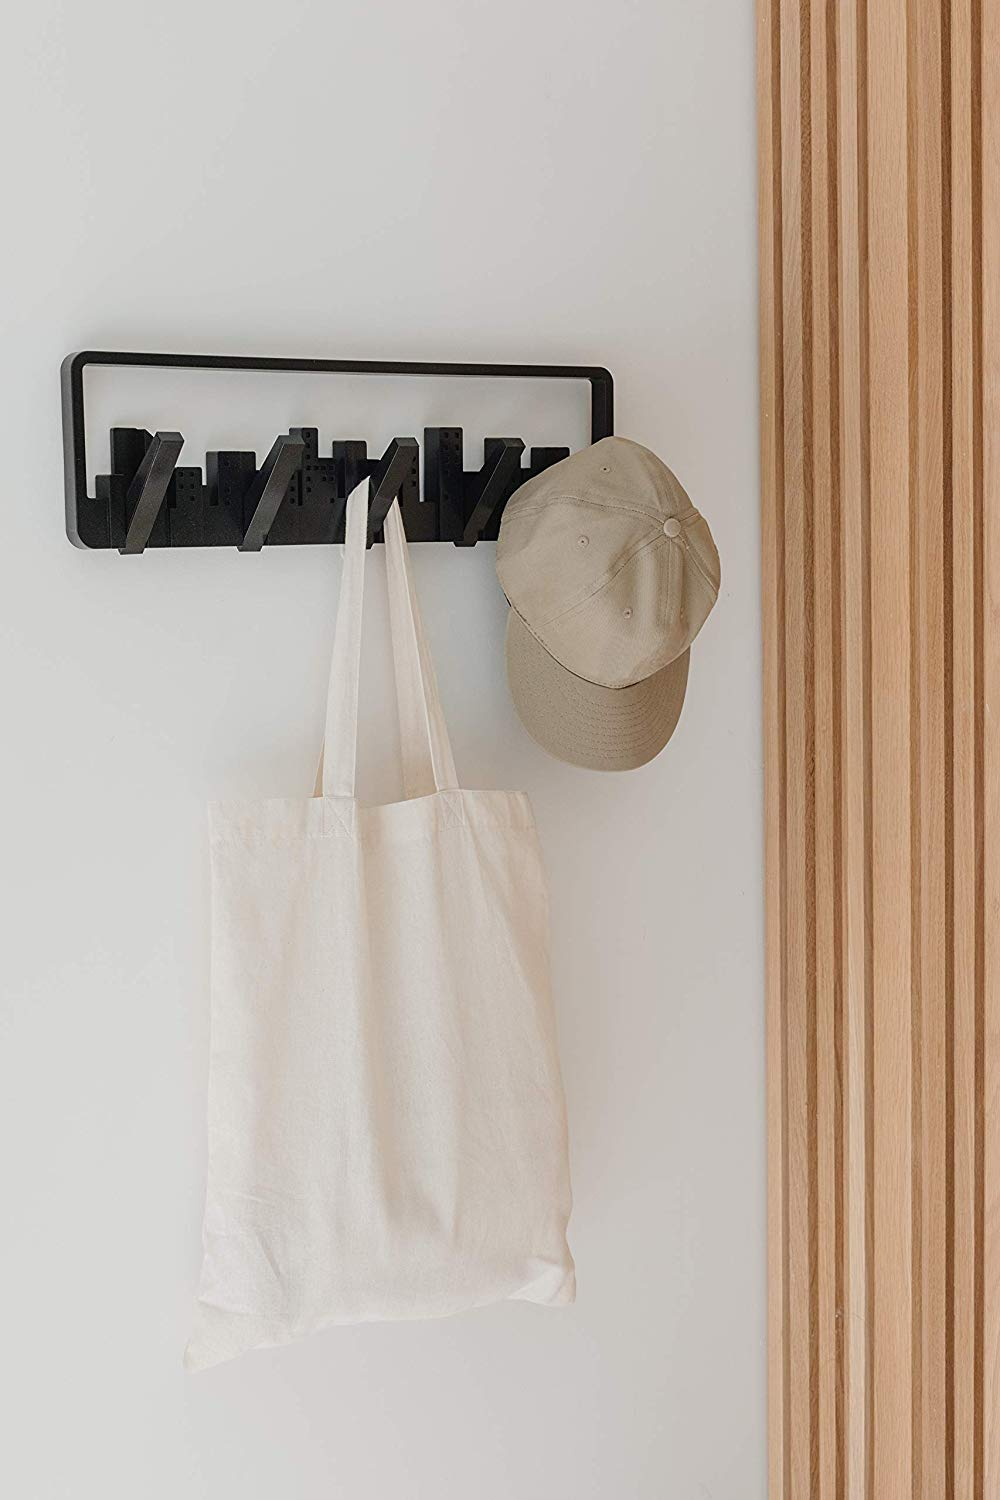 useful-home-decor-decorative-wall-hook-gift-for-architecture-enthusiast